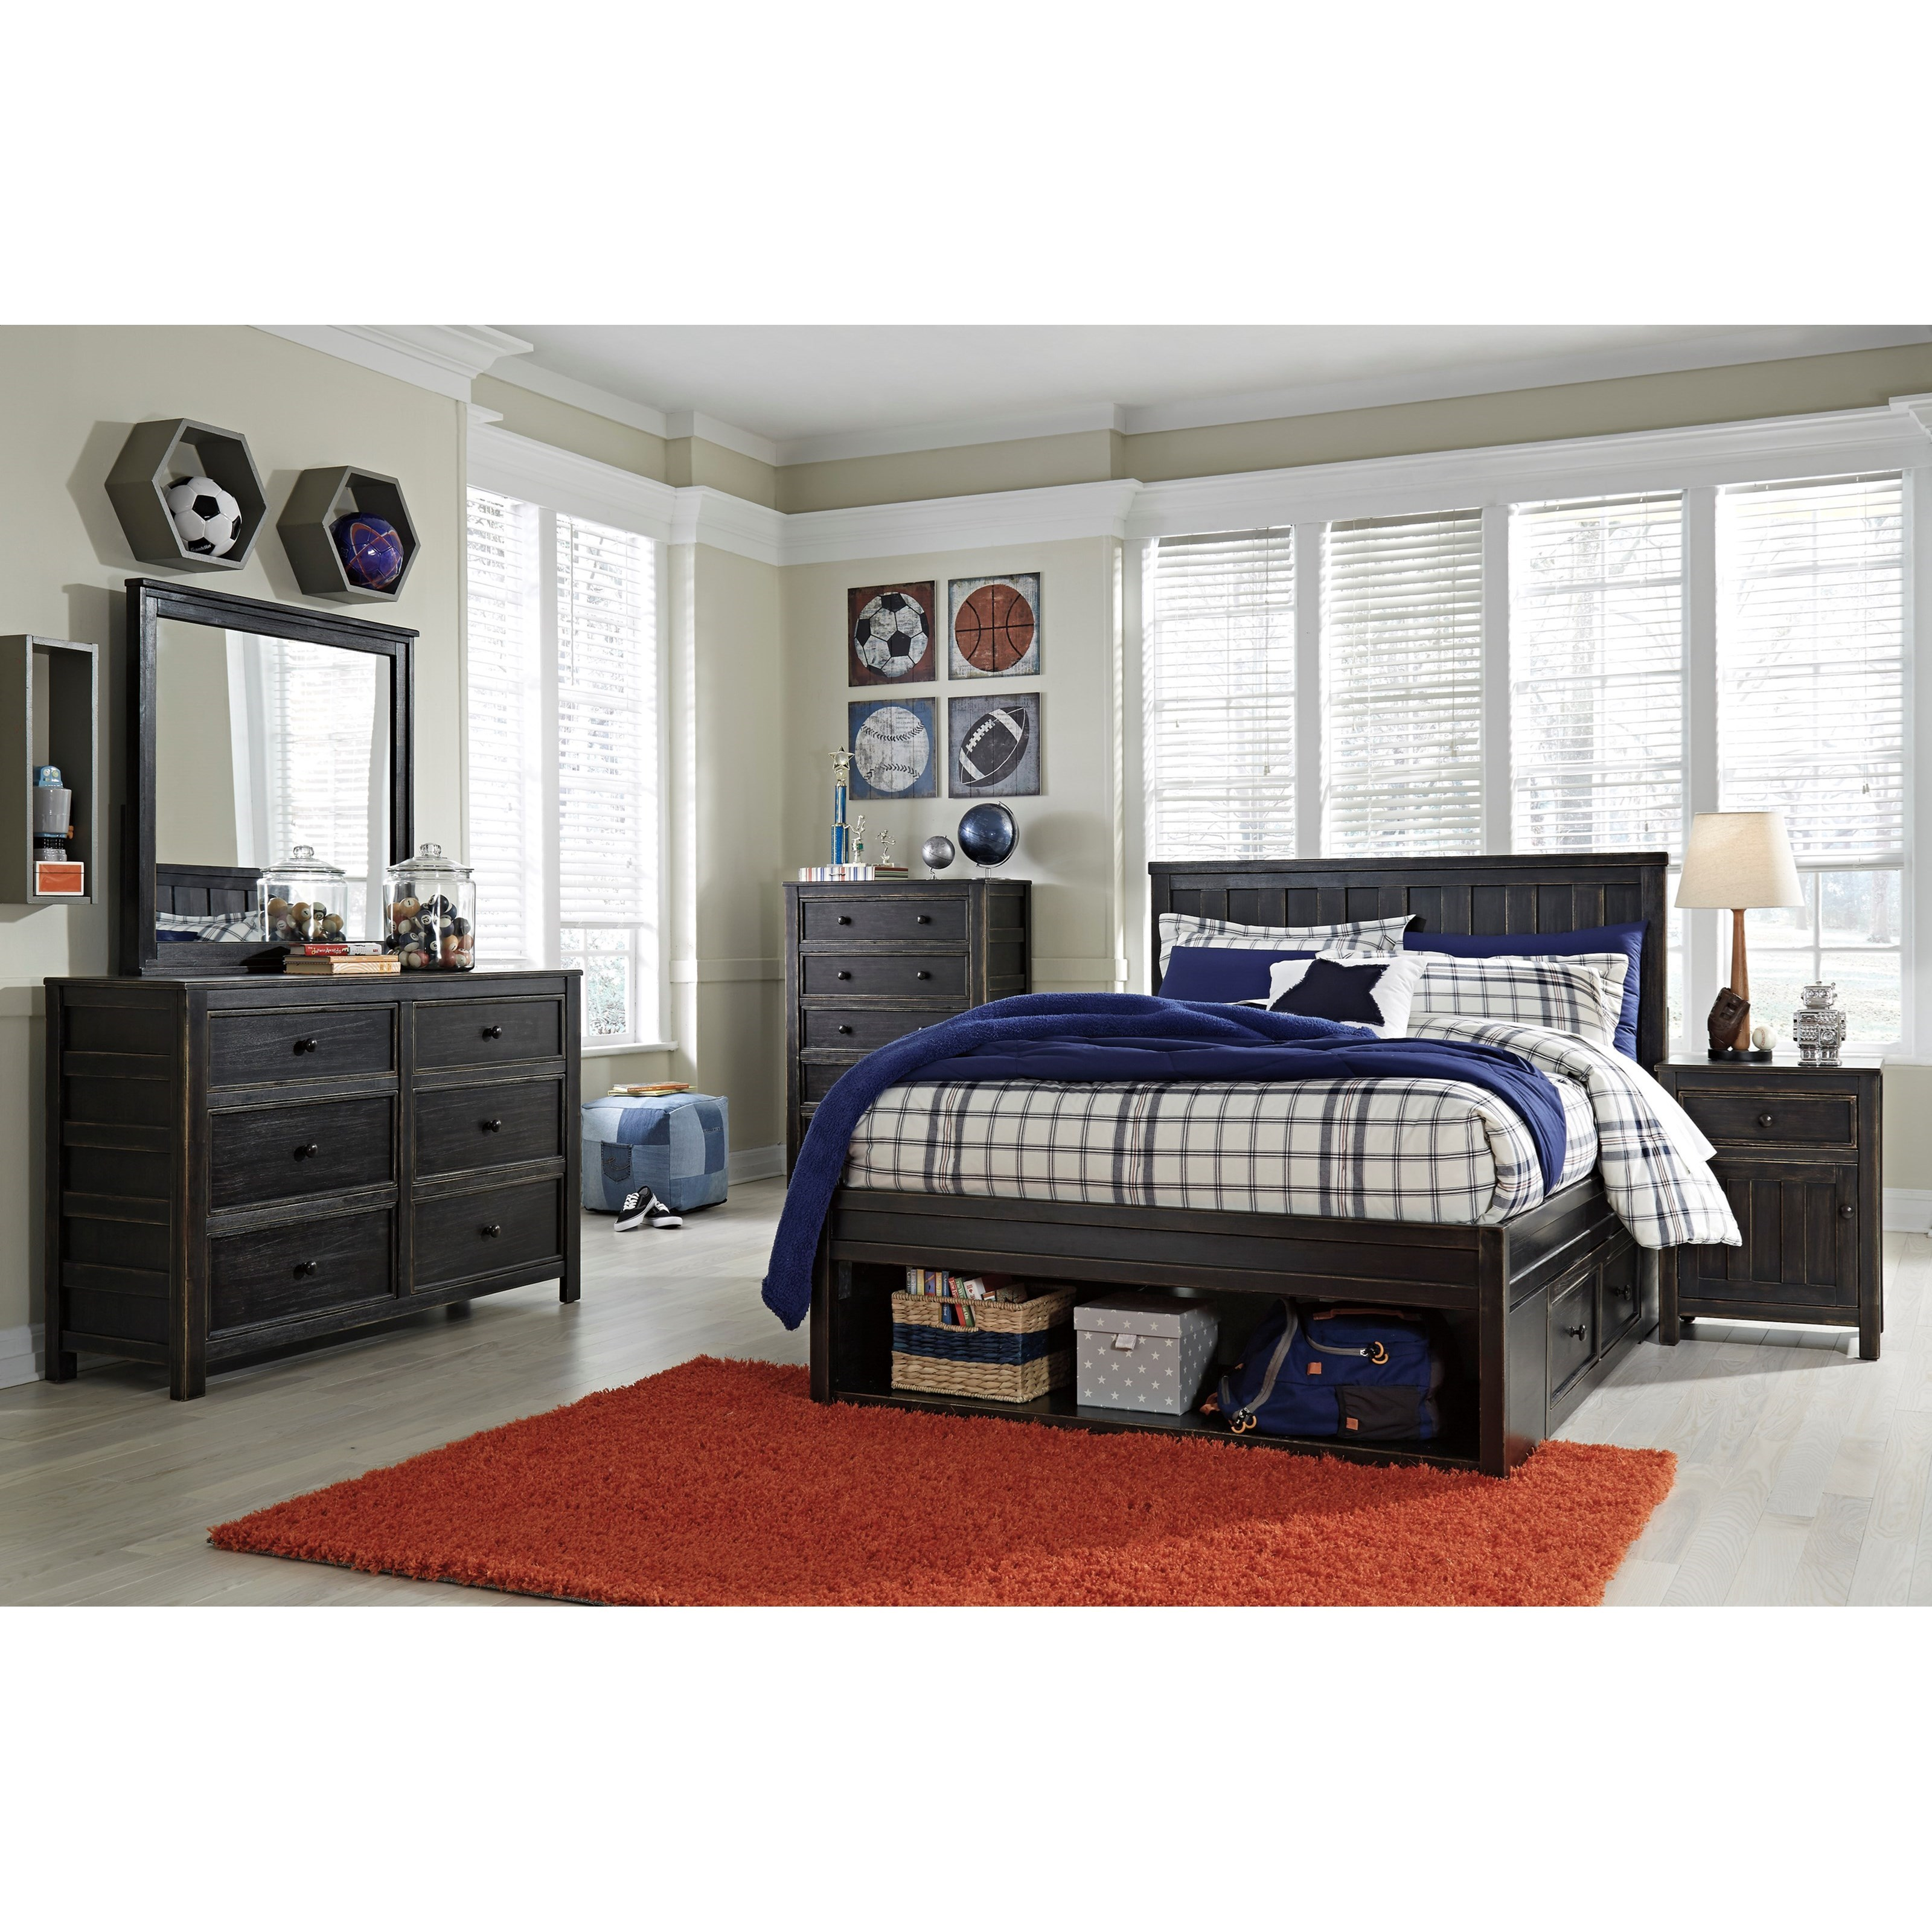 Signature Design by Ashley Jaysom Full Bedroom Group - Item Number: B521 F Bedroom Group 3